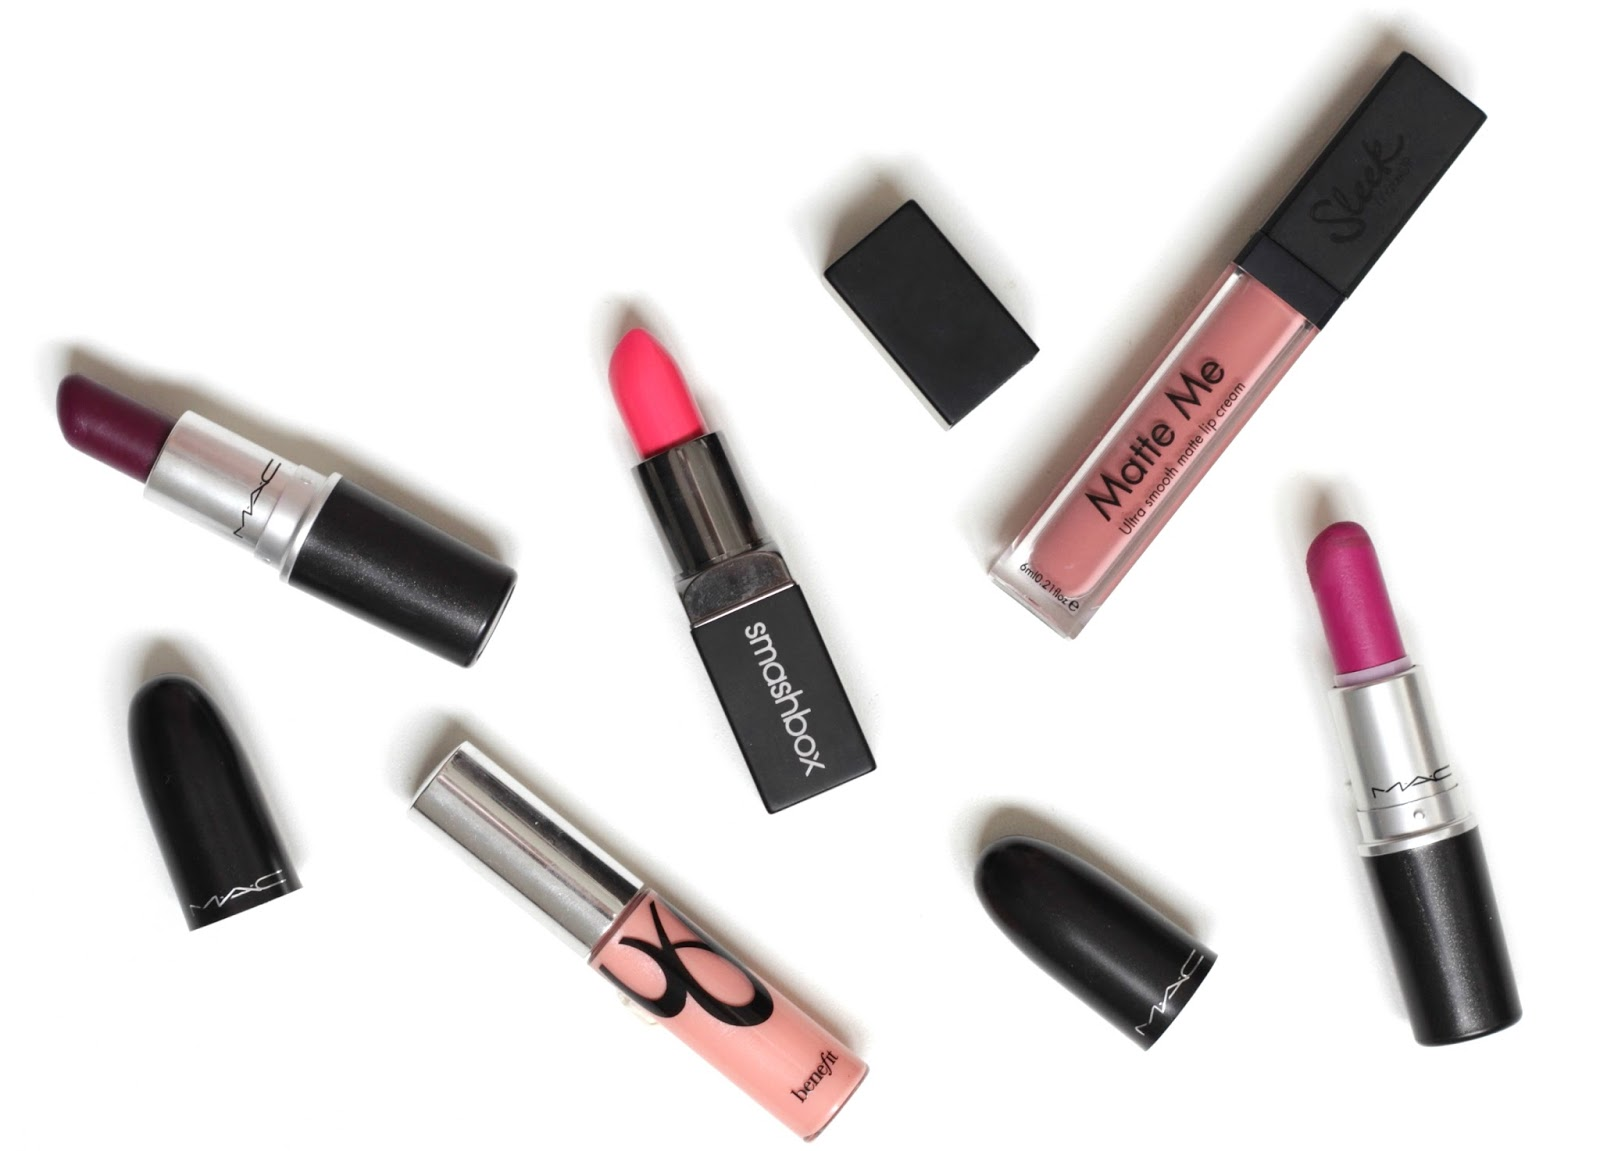 TOP 5 PINK LIPSTICKS FOR SUMMER AND SPRING, THE BEST PINK LIPSTICKS, BEST HIGH END LIPSTICKS